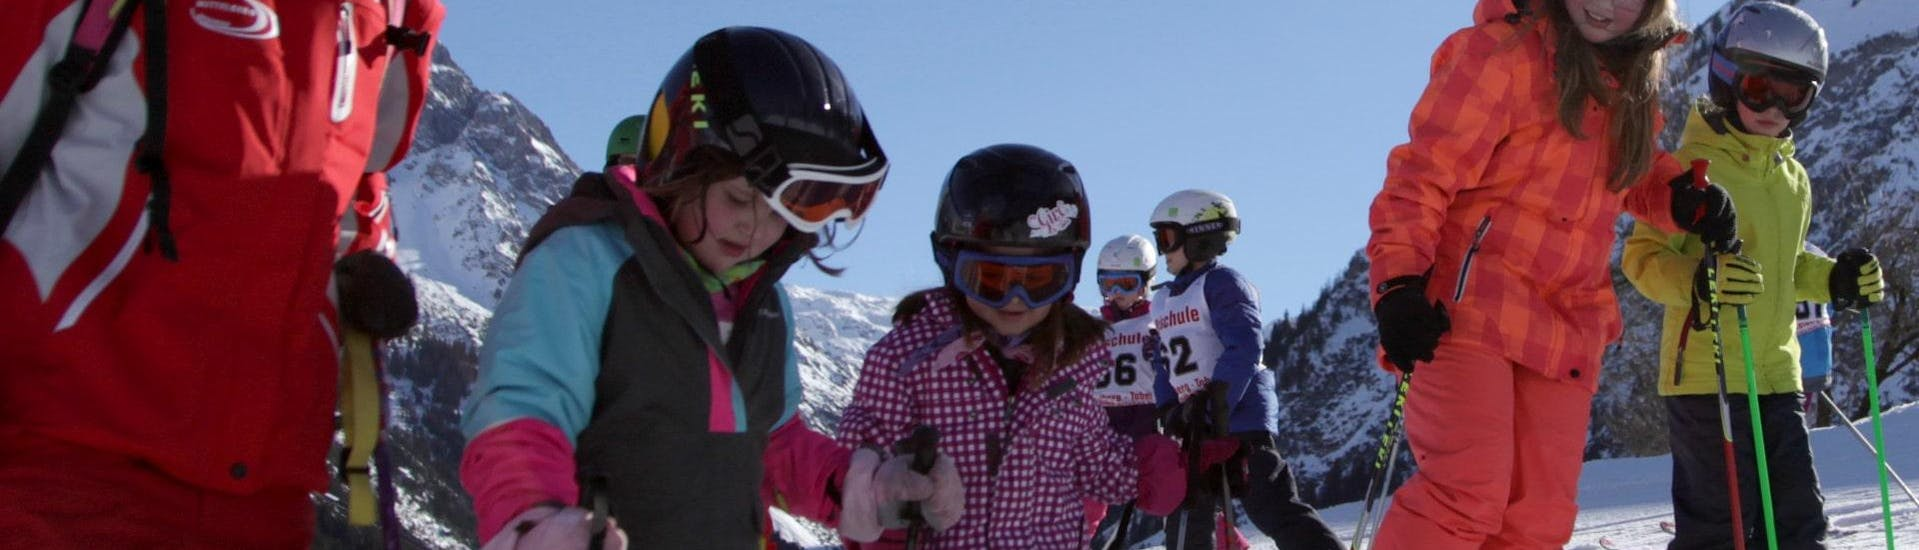 Ski Lessons for Kids (5-12 years) - Beginners